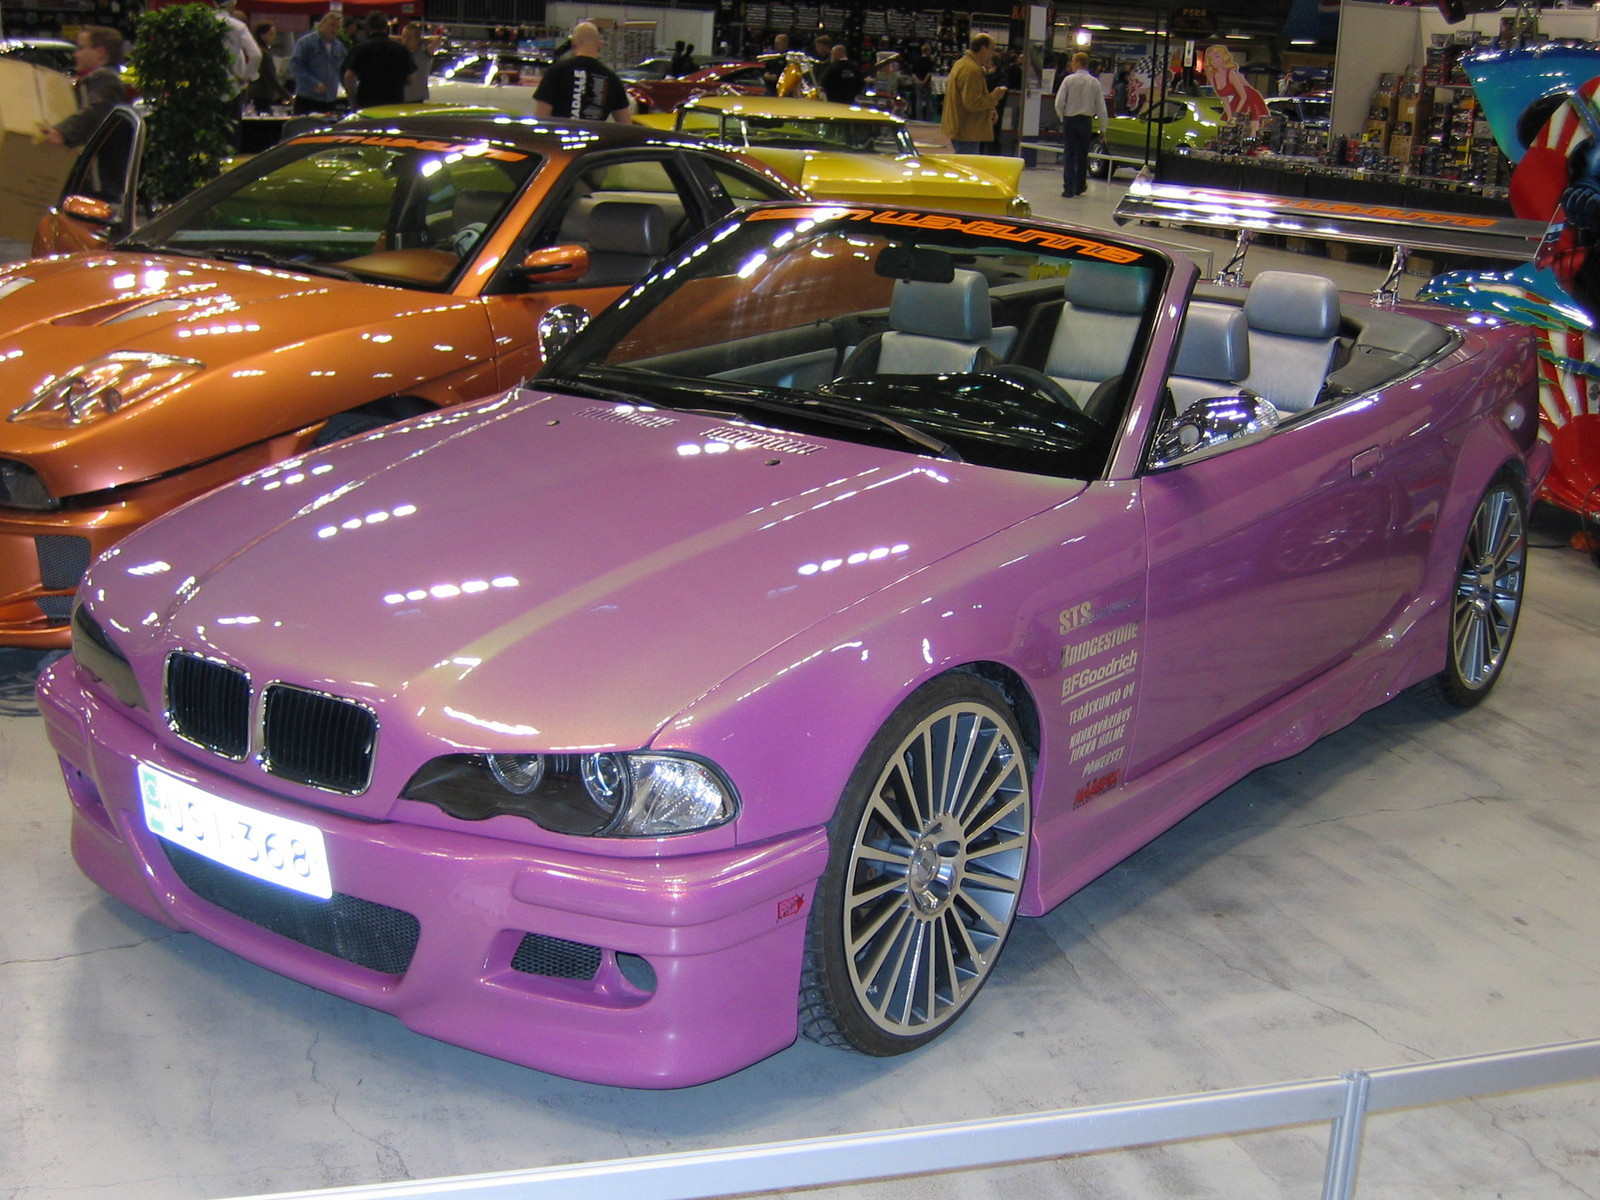 hot rod & rock show 2005, Pink BMW